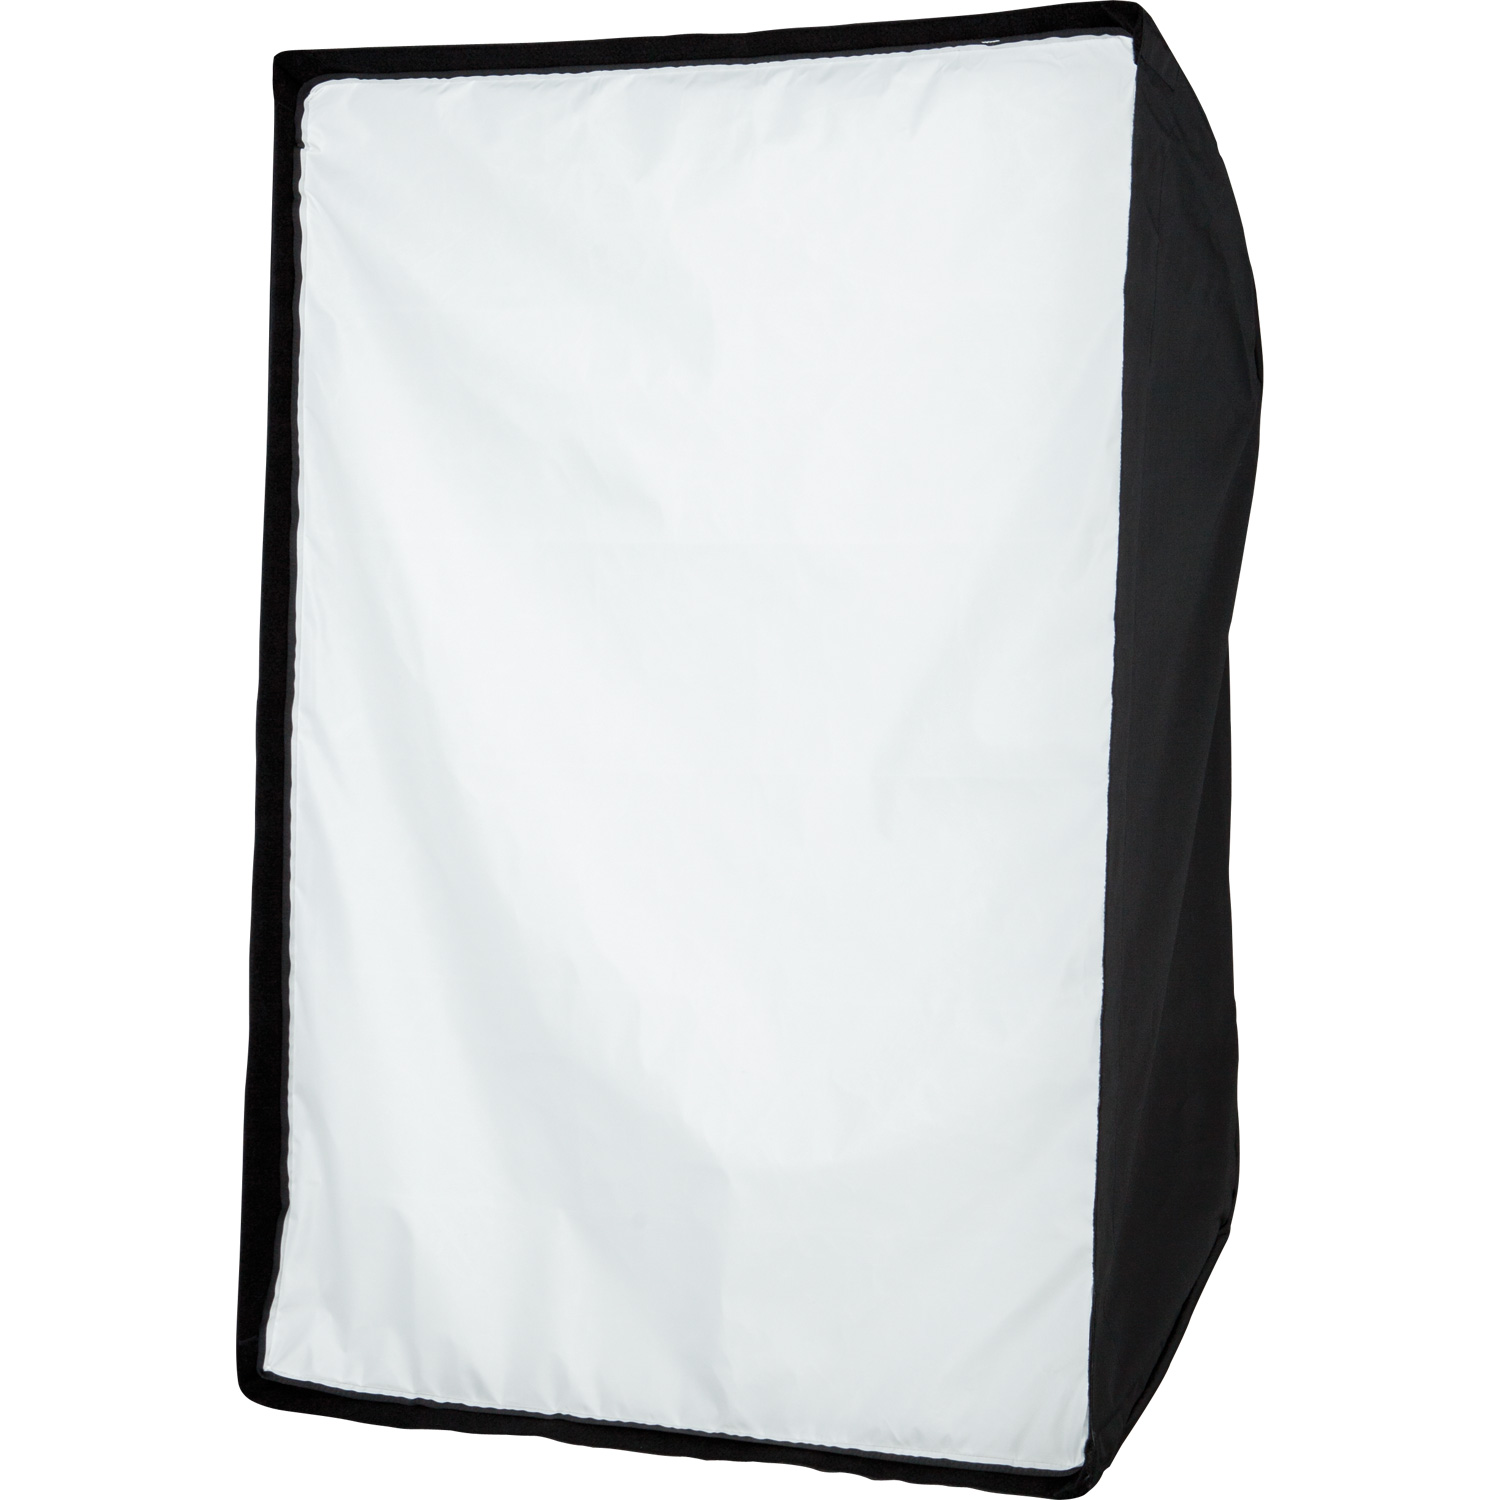 Pro 36-in. x 48-in. Softbox